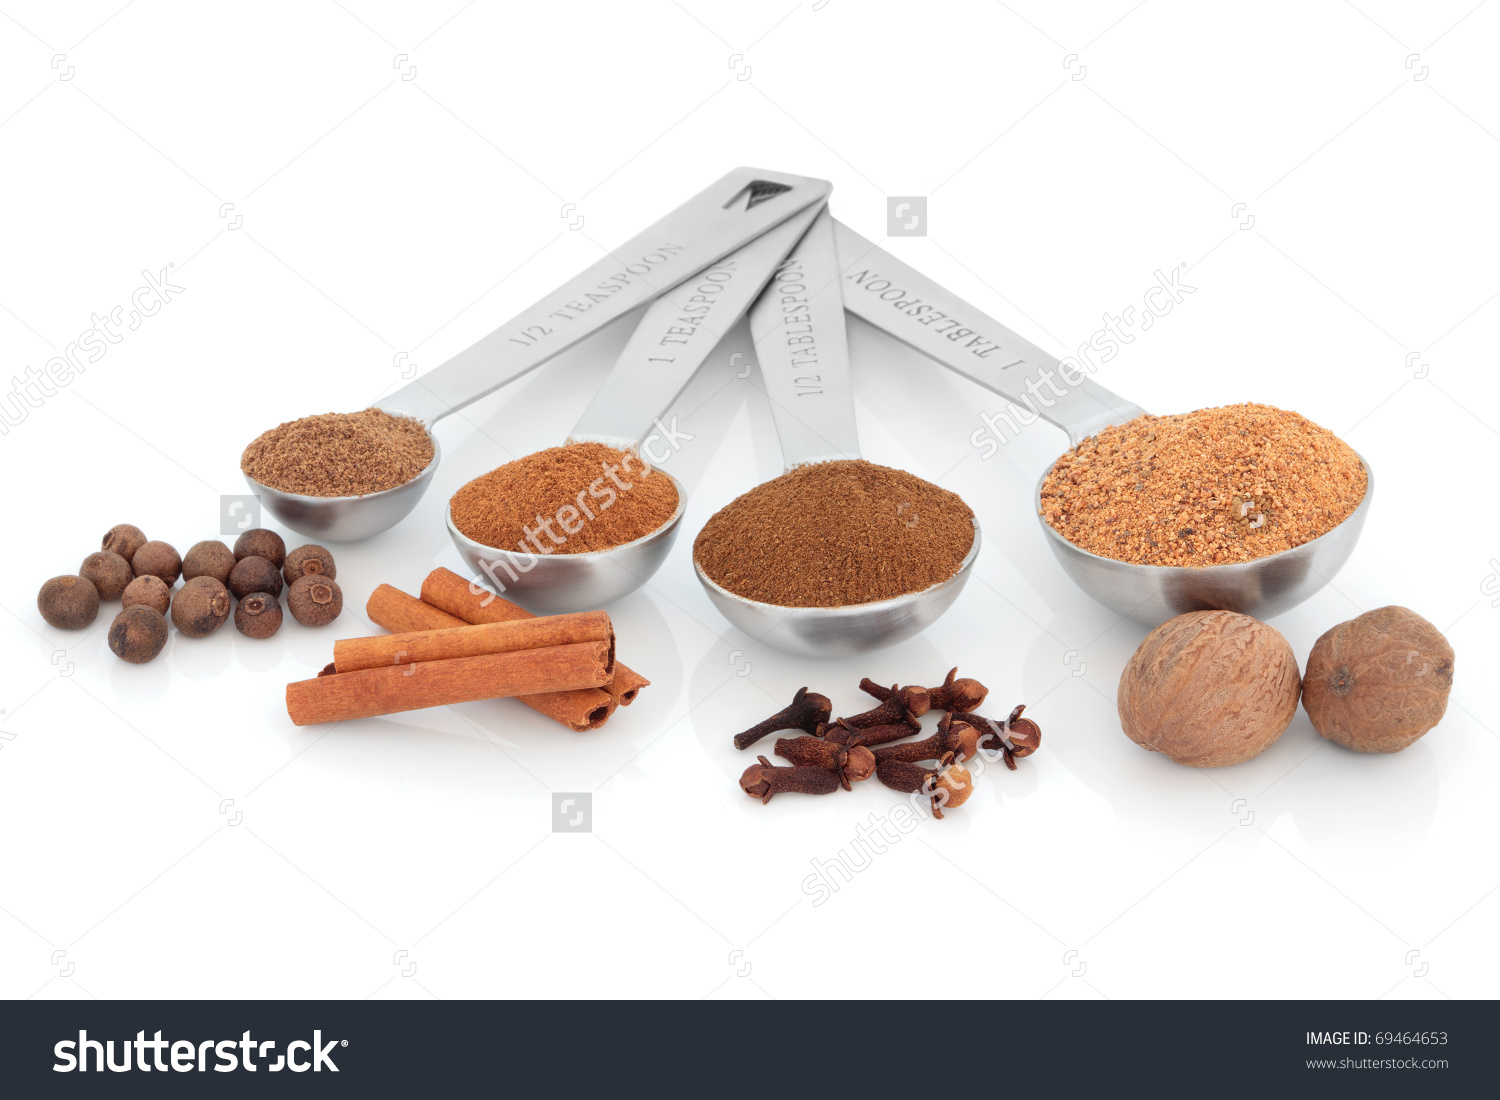 Spice Selection Of Nutmeg, Clove, Cinnamon And Allspice In Powder.